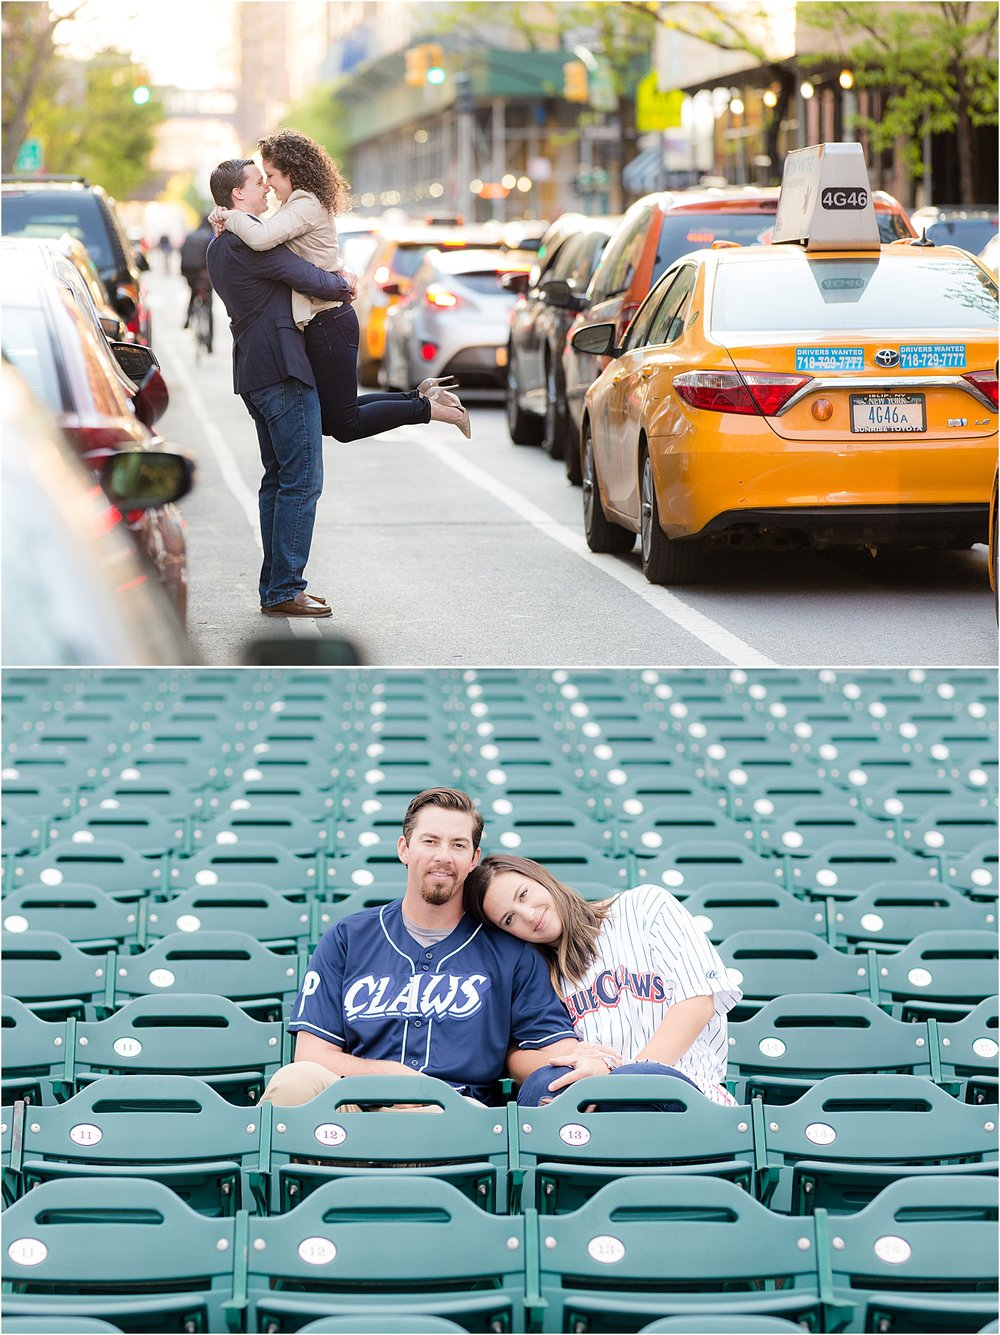 fun engagement photos at unique locations like NYC street and Lakewood Blue Claws Stadium in NJ